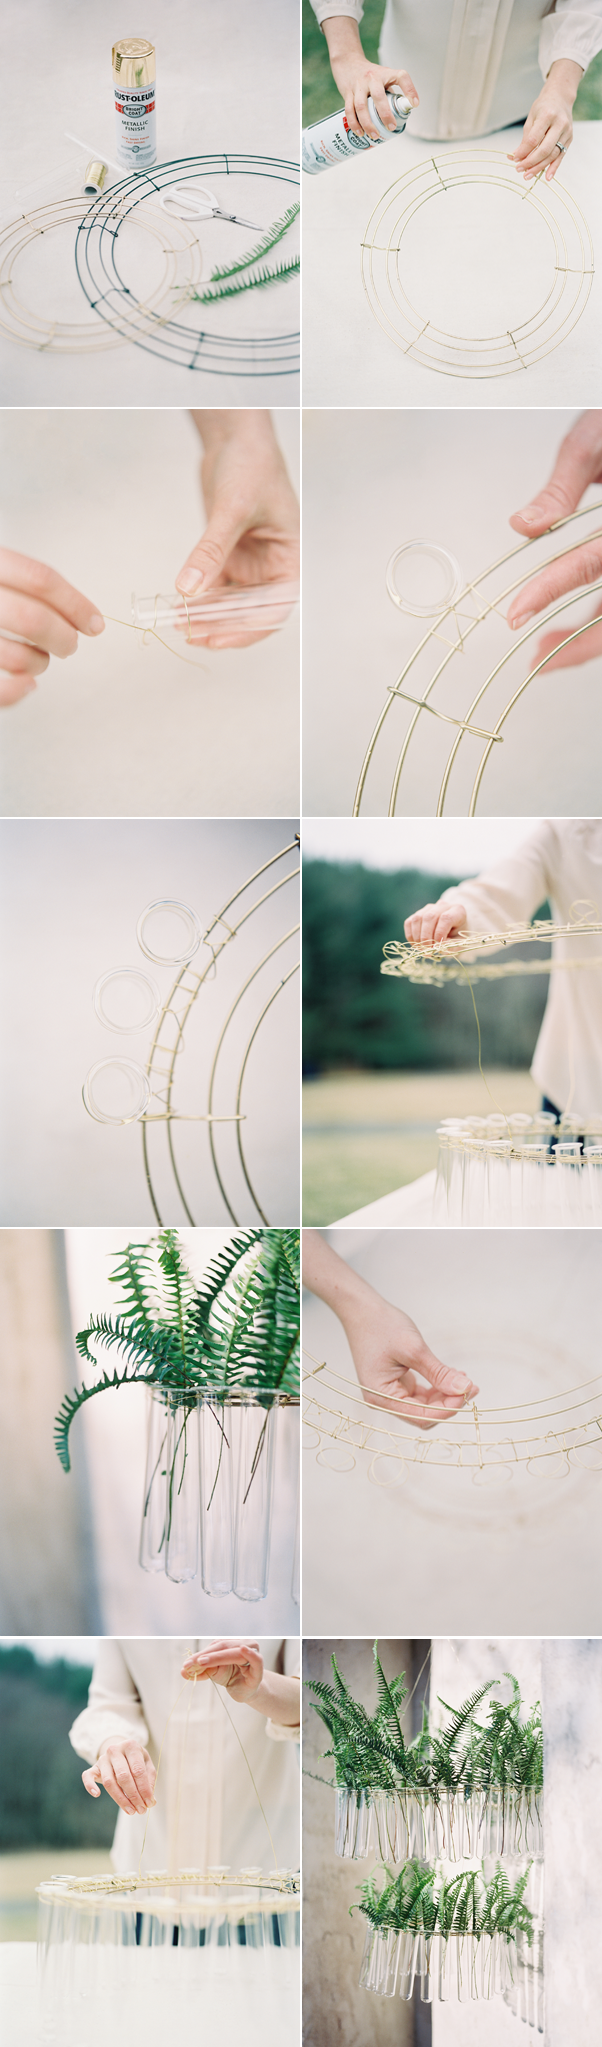 diy-test-tube-chandelier-tutorial1